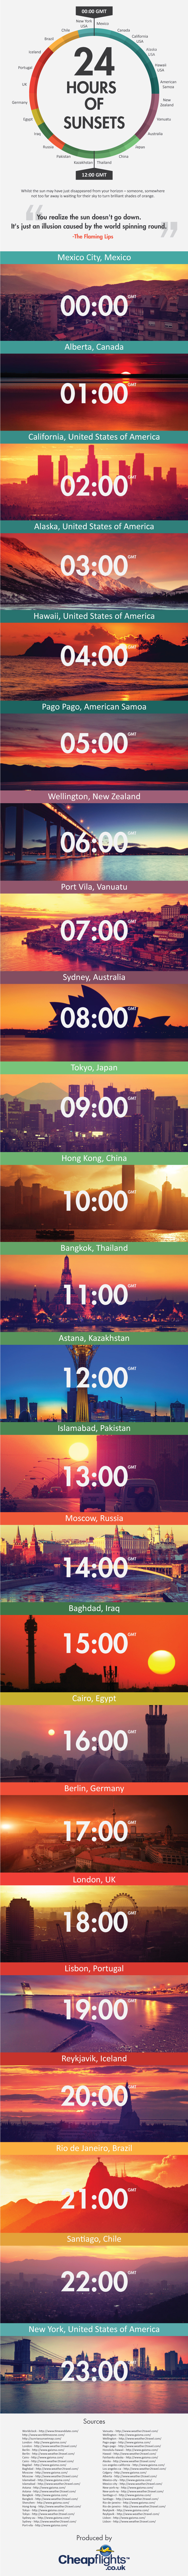 Infographic: 24 Hours of Sunsets